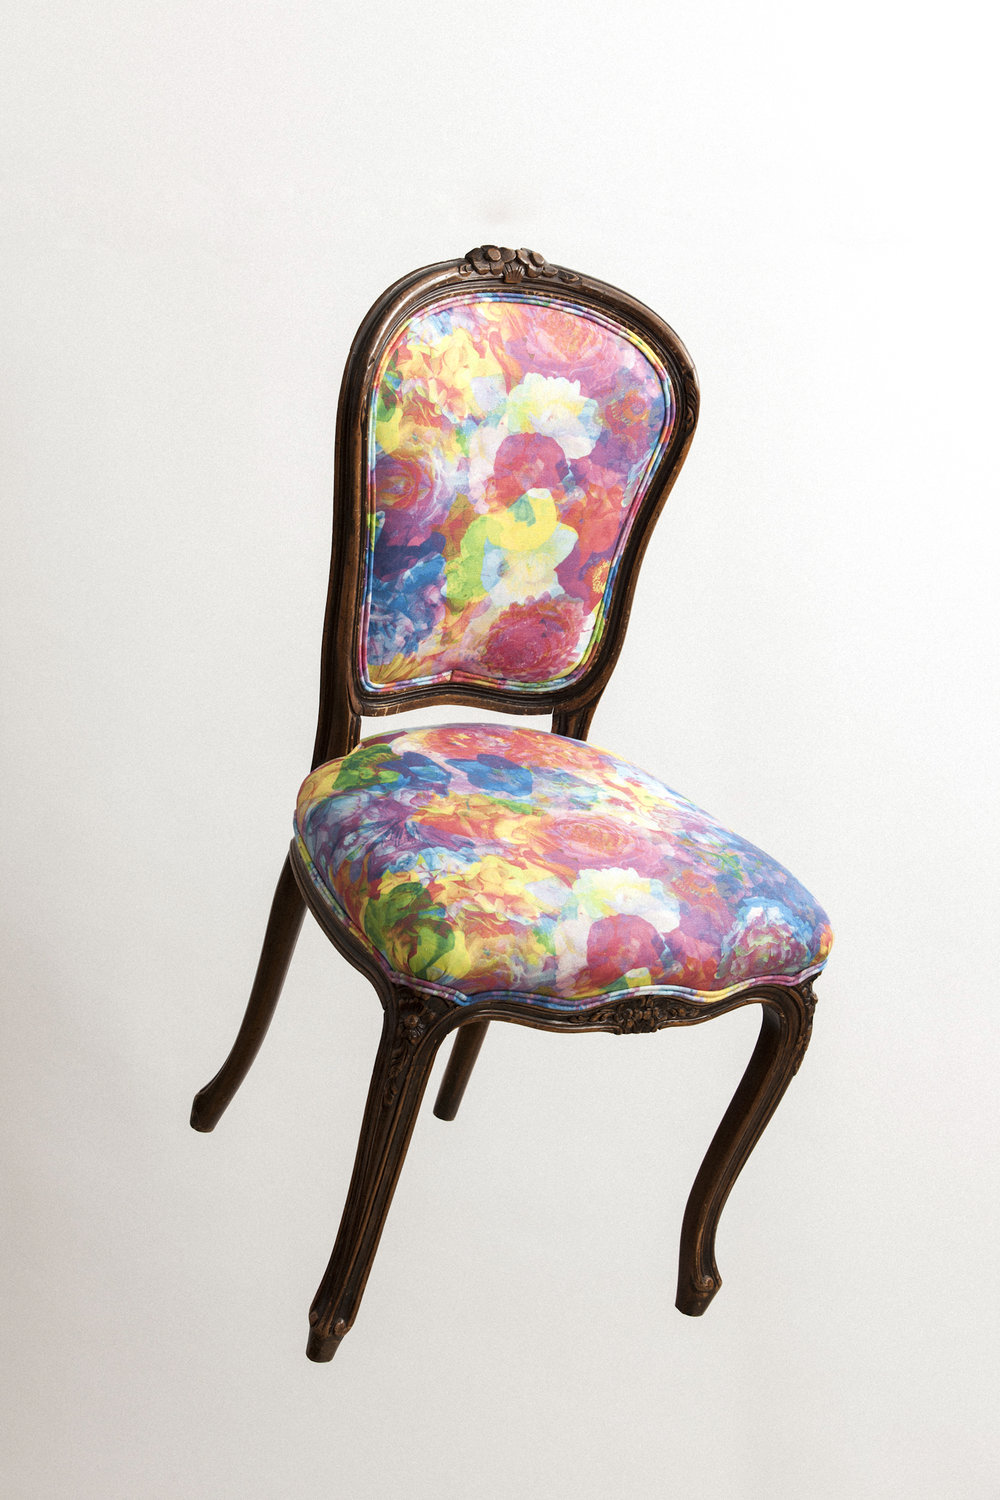 Chairloom refinished and recovered these beautiful antique dining chairs for us using our candy colored  Wildflowers fabric .